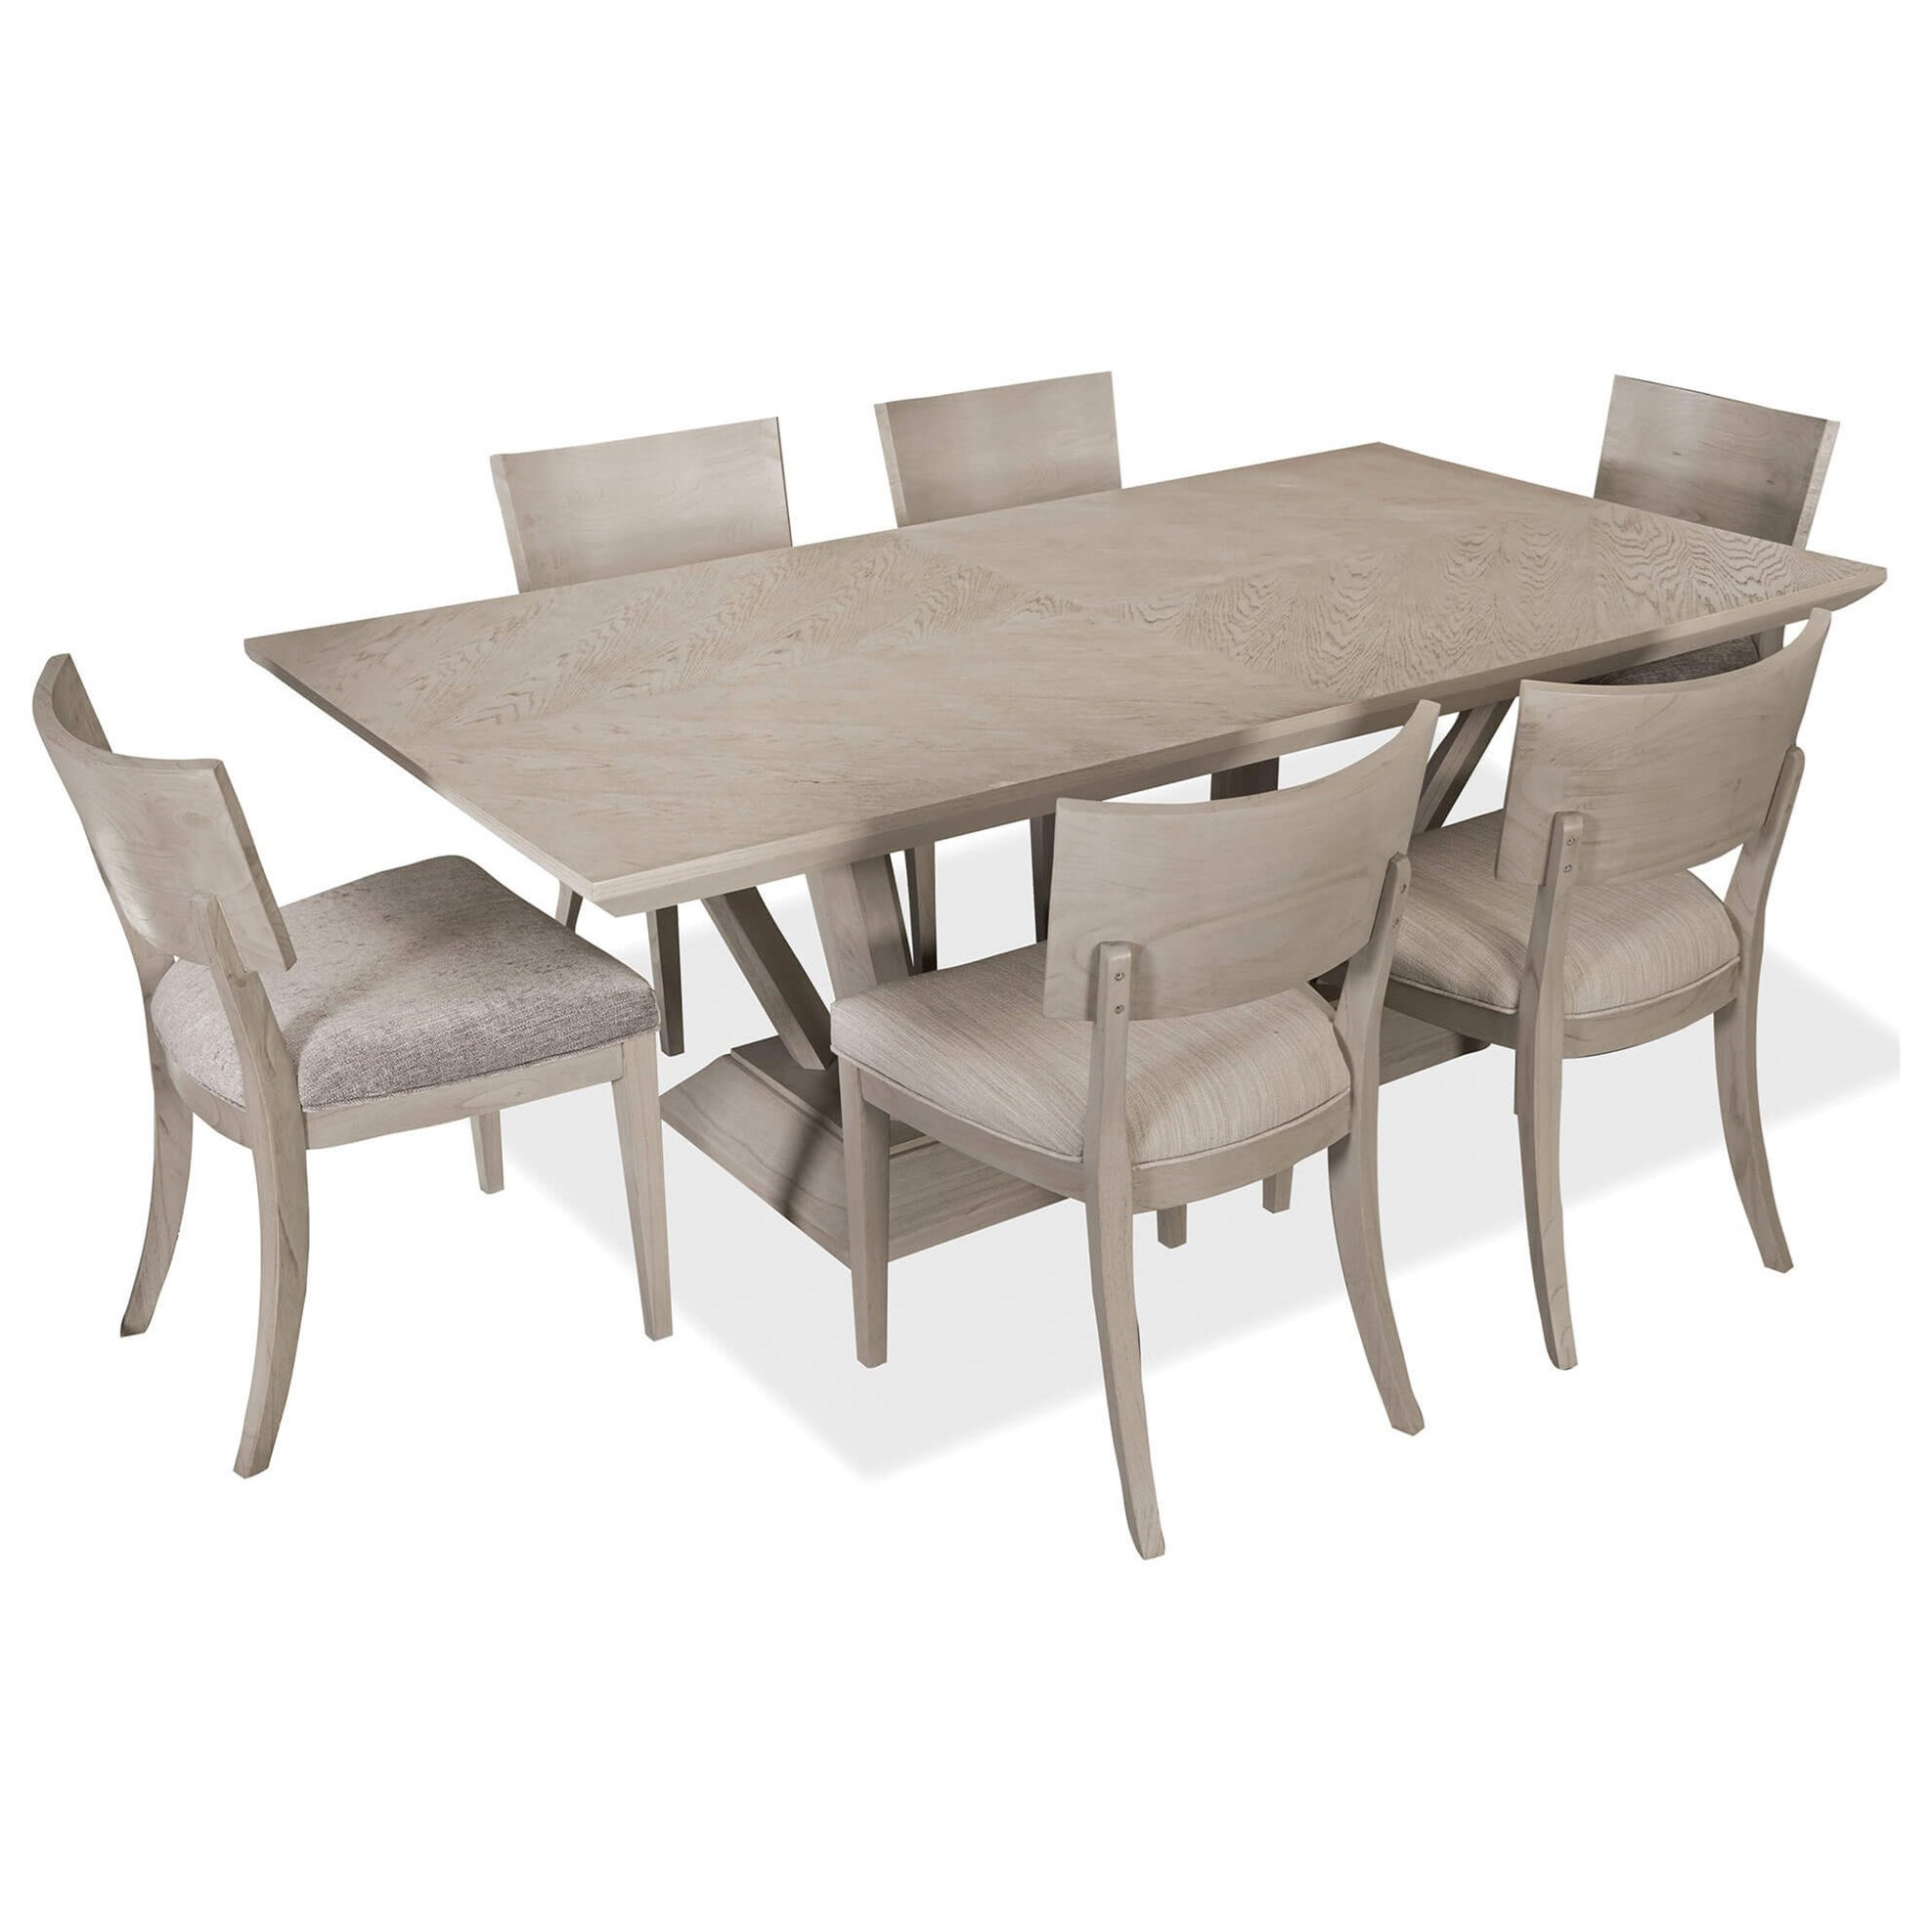 Vista 7-Piece Table and Chair Set by Palliser at Stoney Creek Furniture